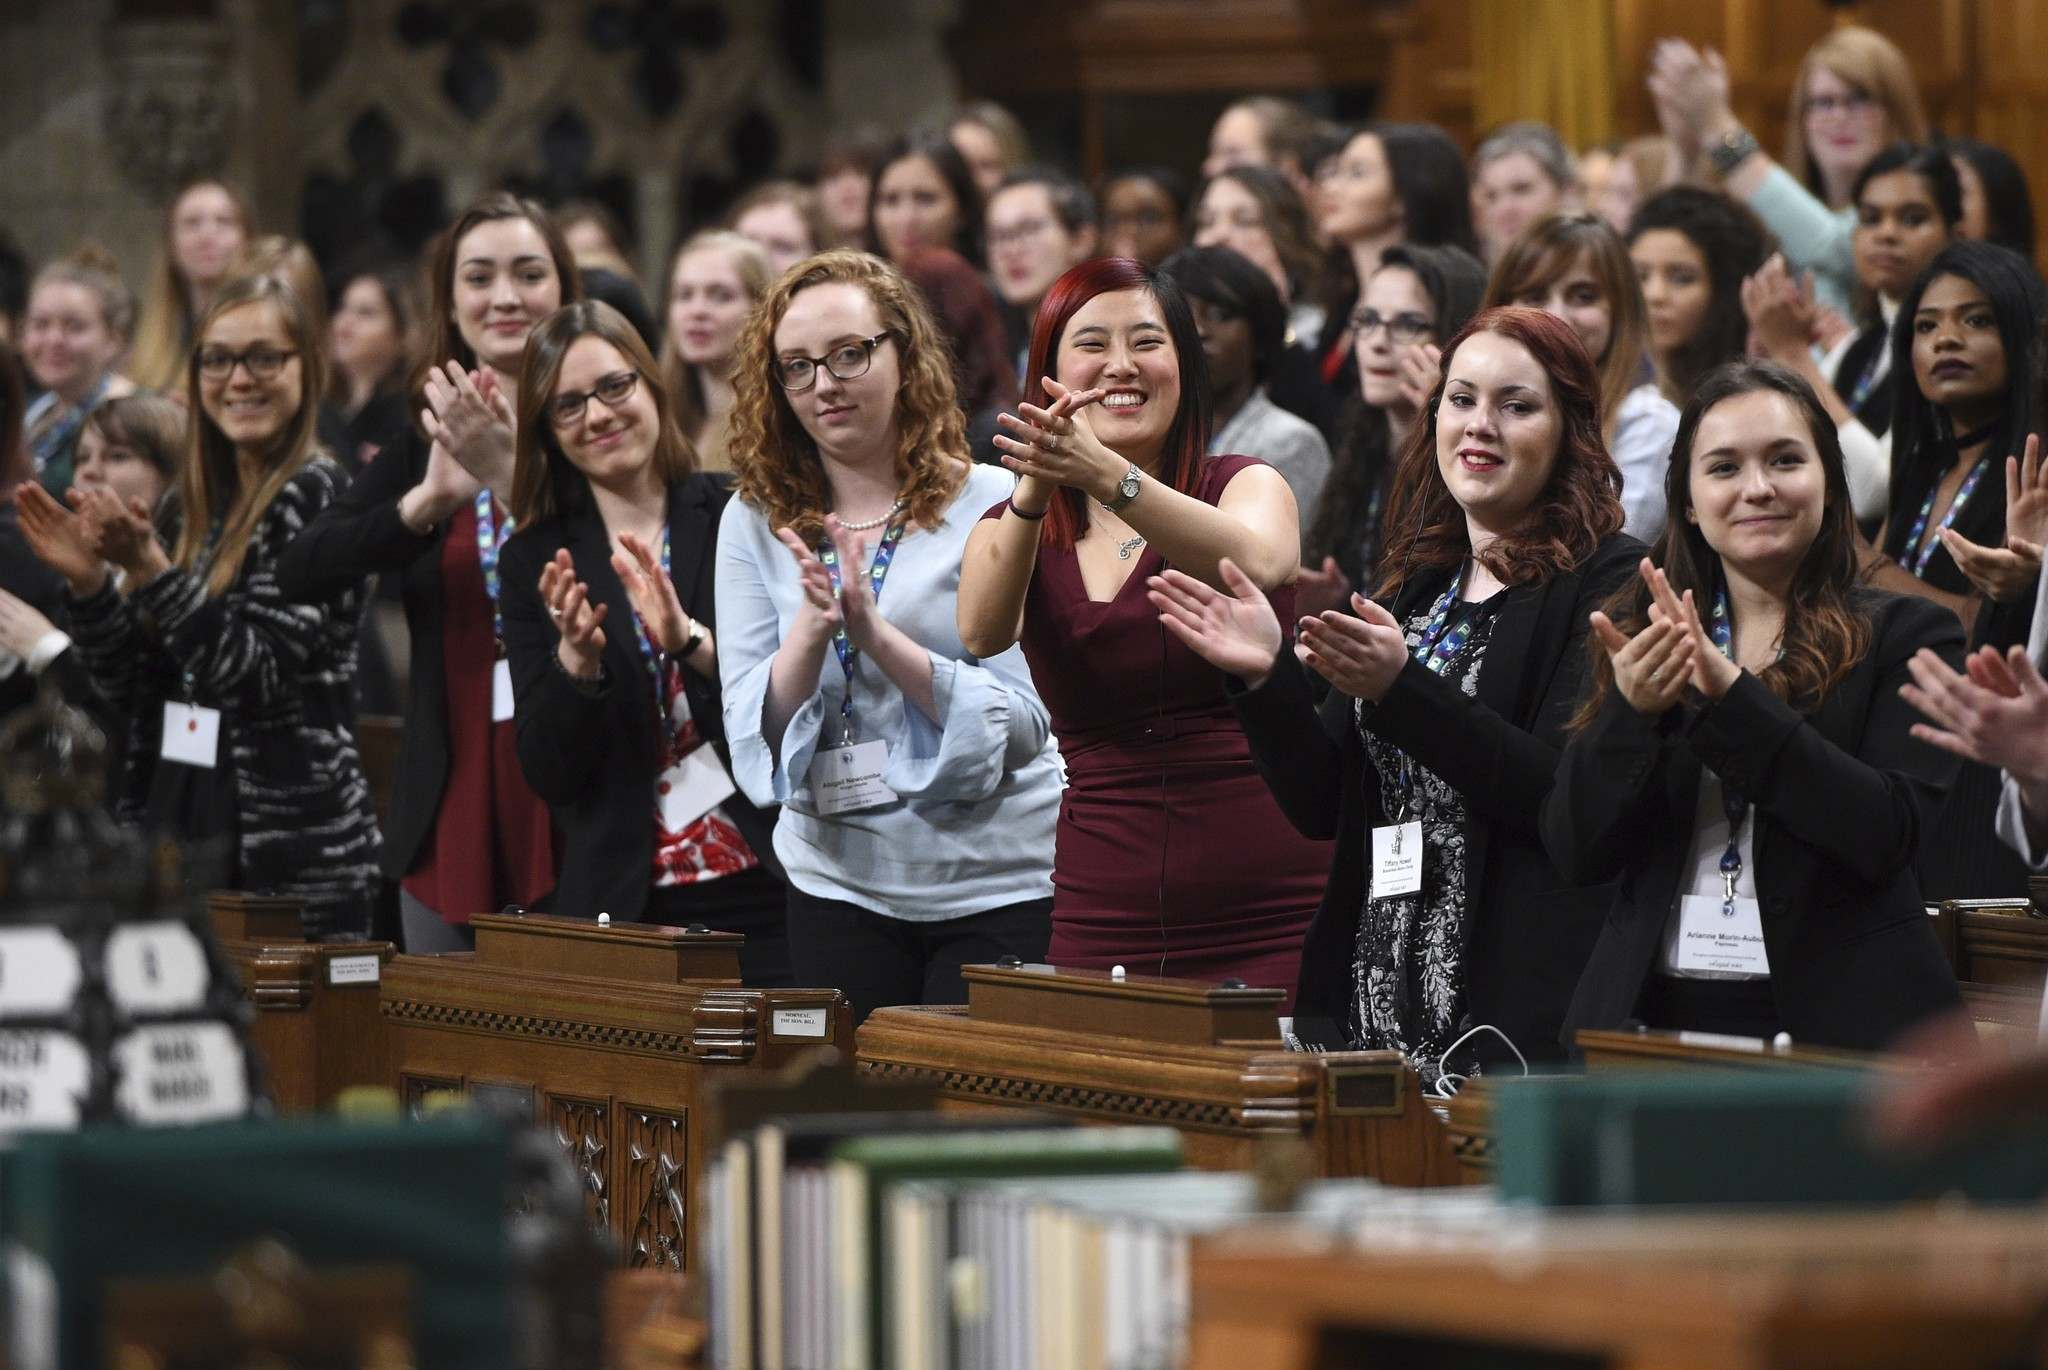 SEAN KILPATRICK / THE CANADIAN PRESS FILES</p><p>A Daughters of the Vote event, organized by Equal Voice Canada, took place in the House of Commons in Ottawa on March 8.</p>